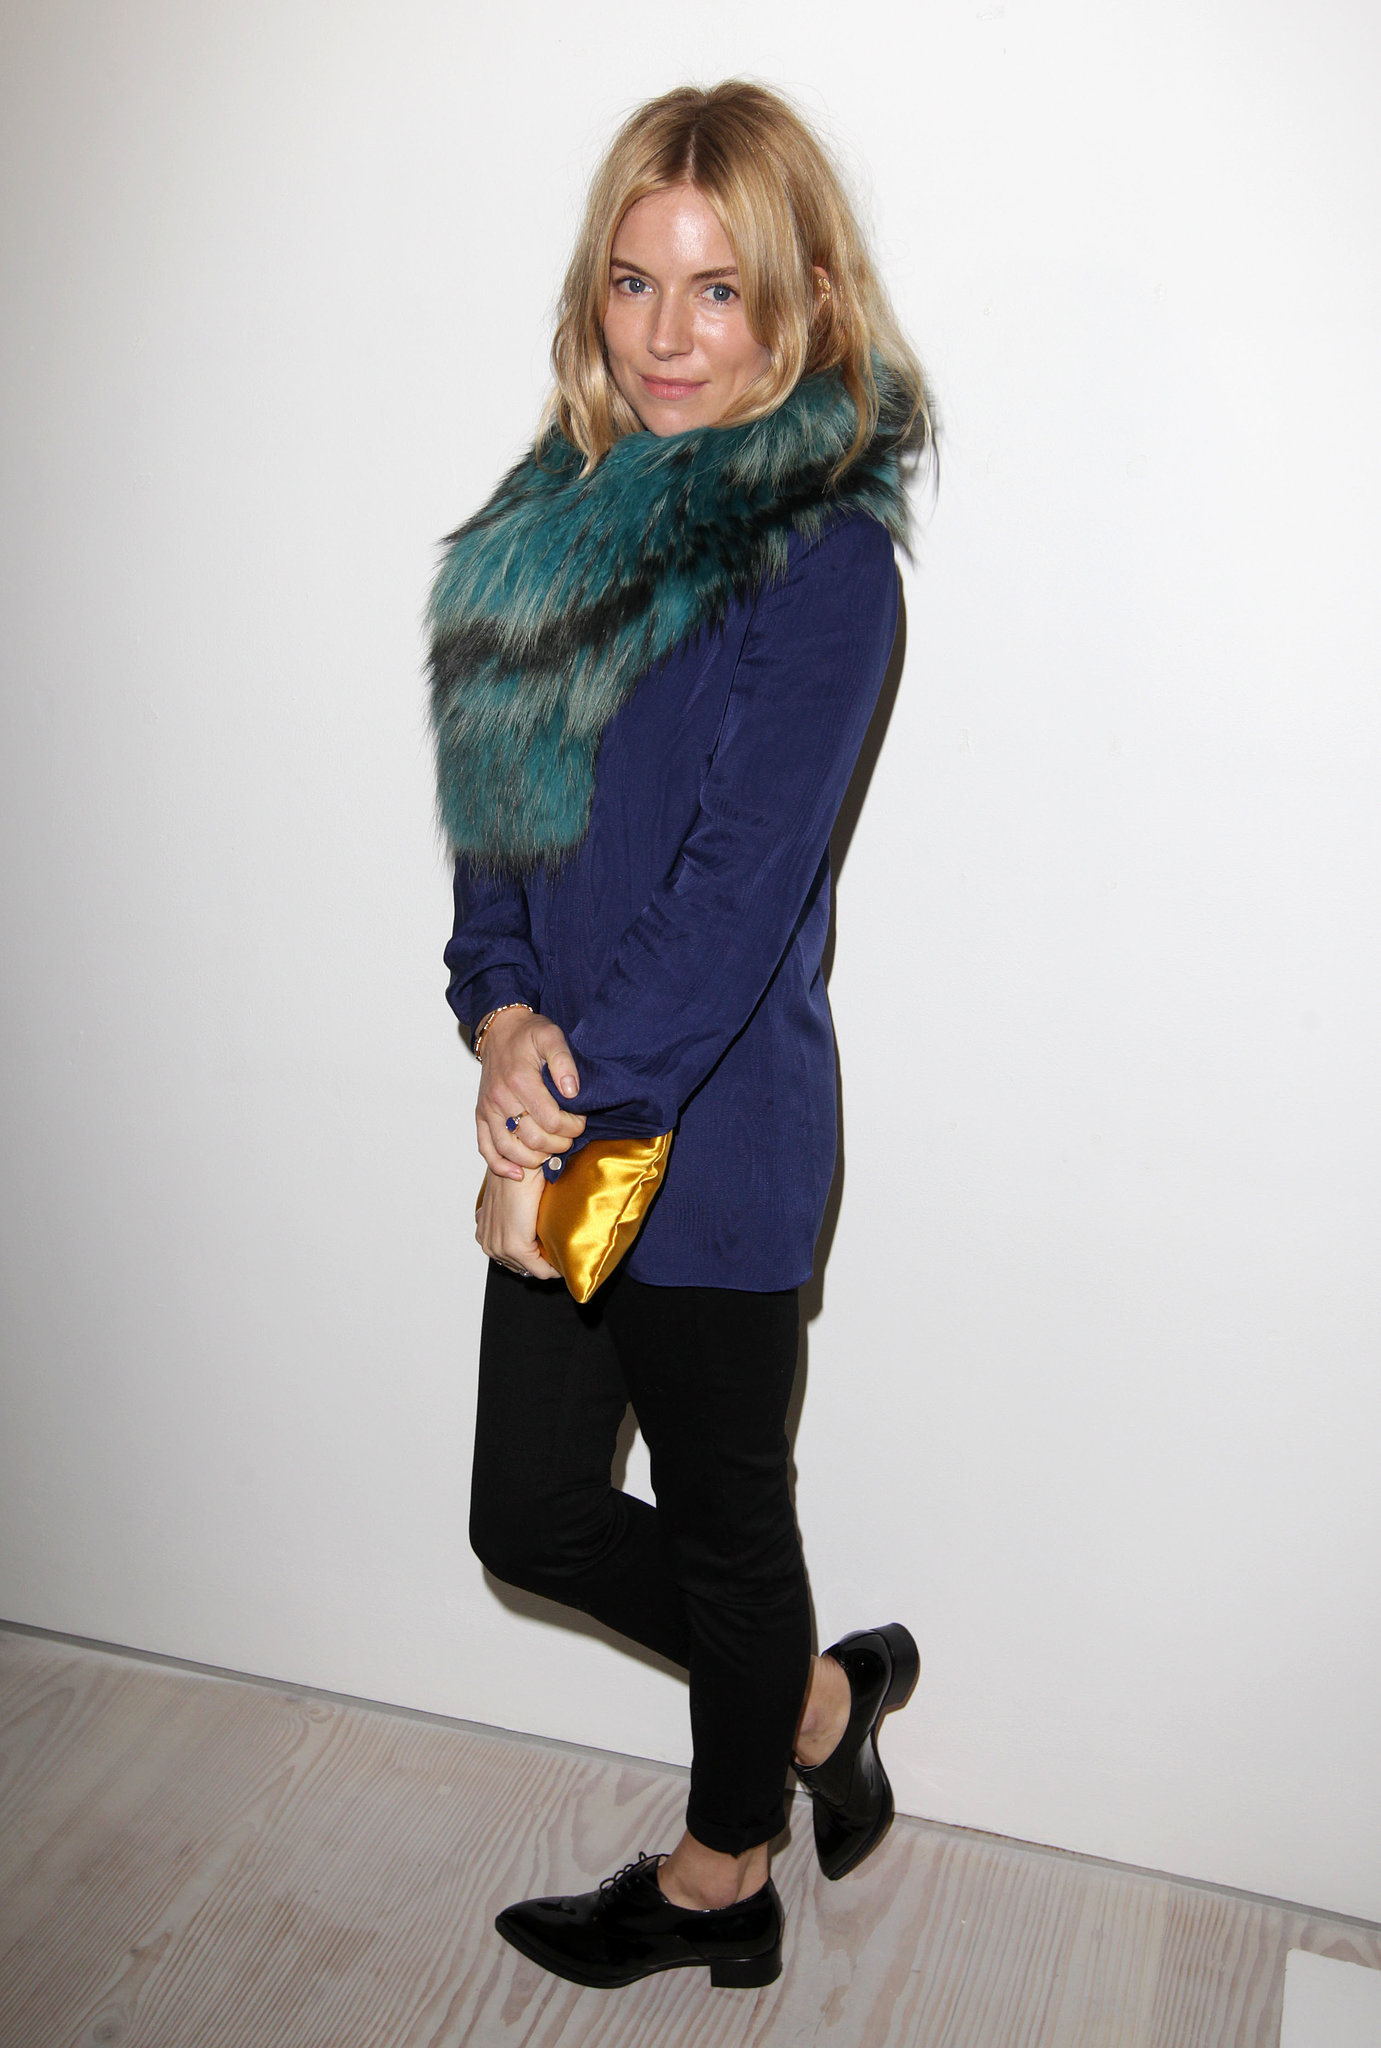 Sienna Miller wore a fur scarf to Matthew Williamson's show.